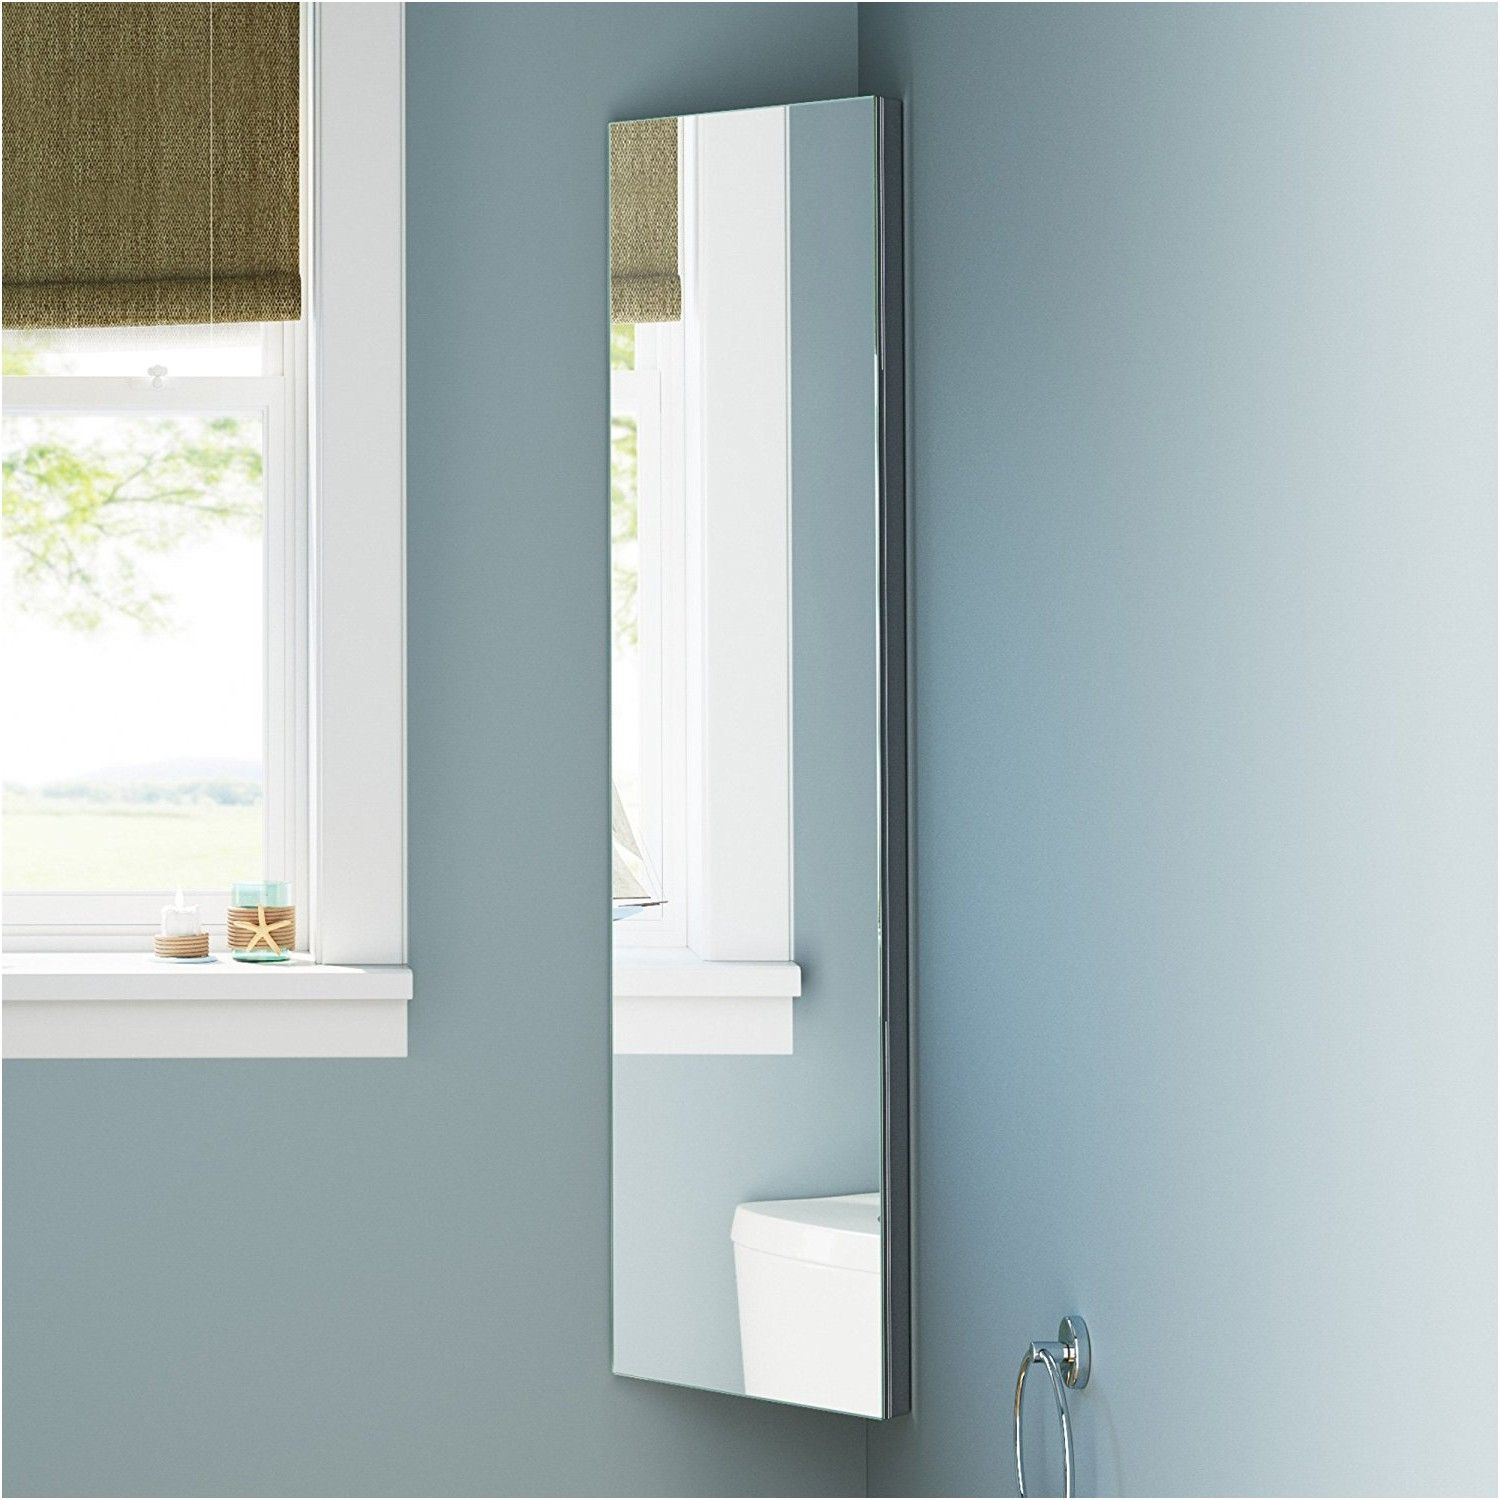 zanex bevelled edge 1200mm stainless steel mirror bathroom corner ...